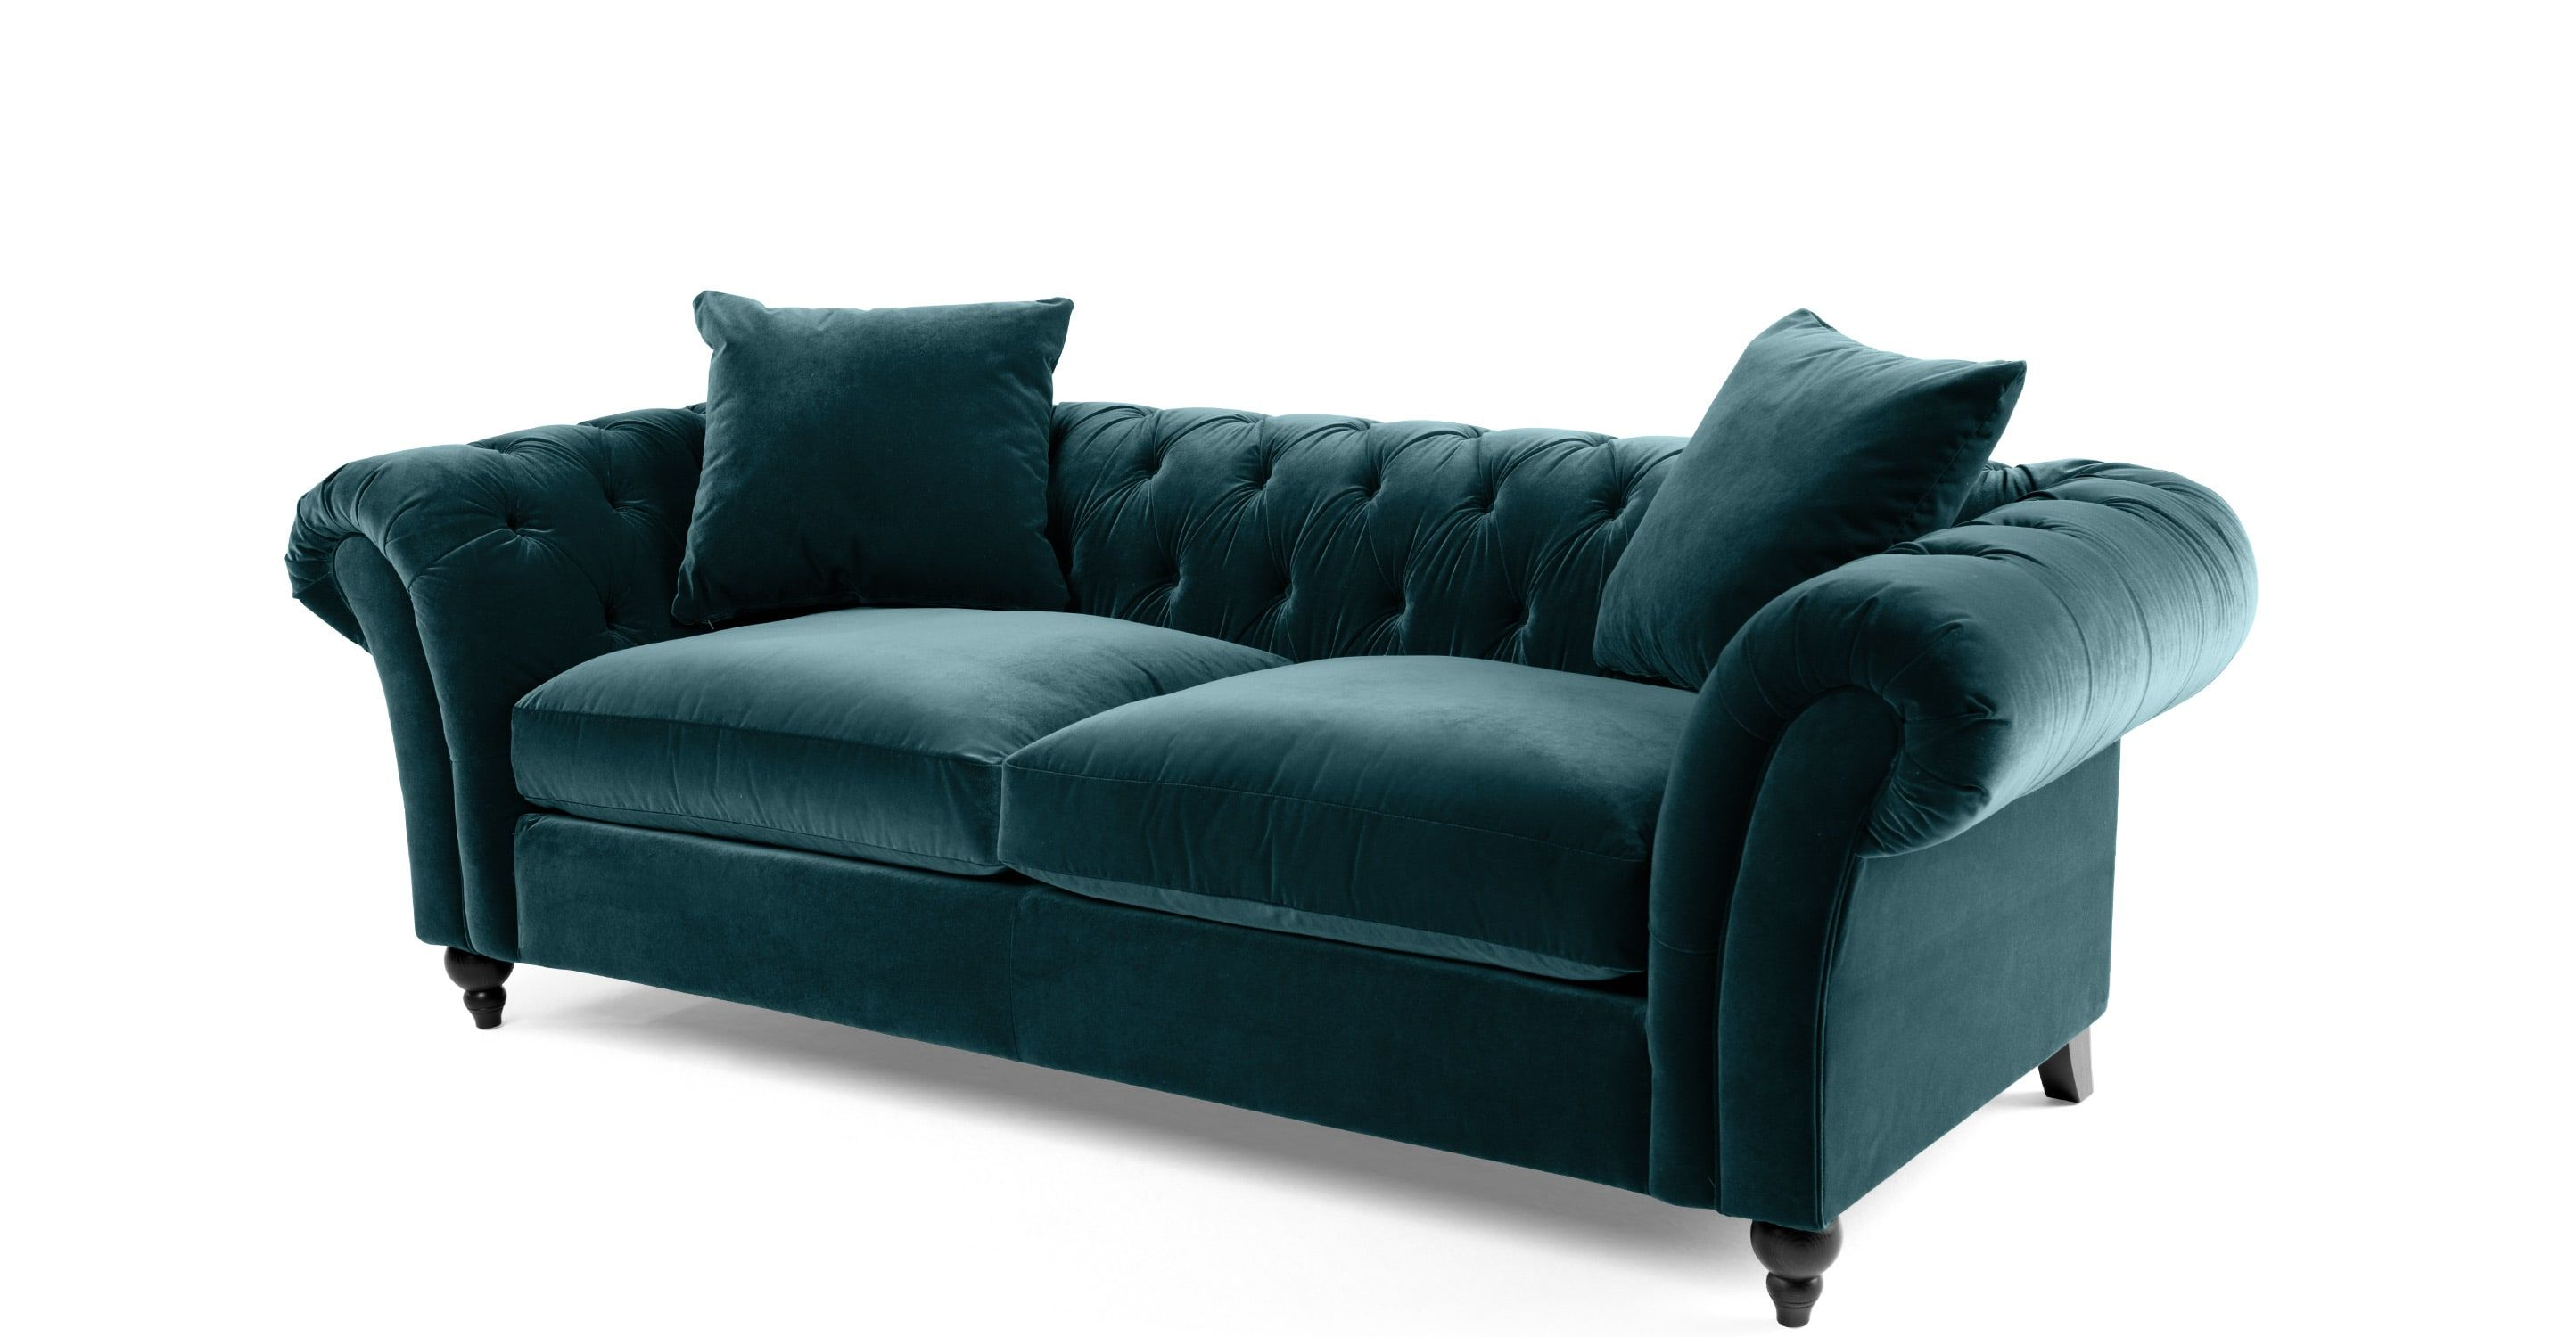 Chesterfield sofa samt  set Chesterfield black (real leather) by massivum | Sofas, Sessel ...